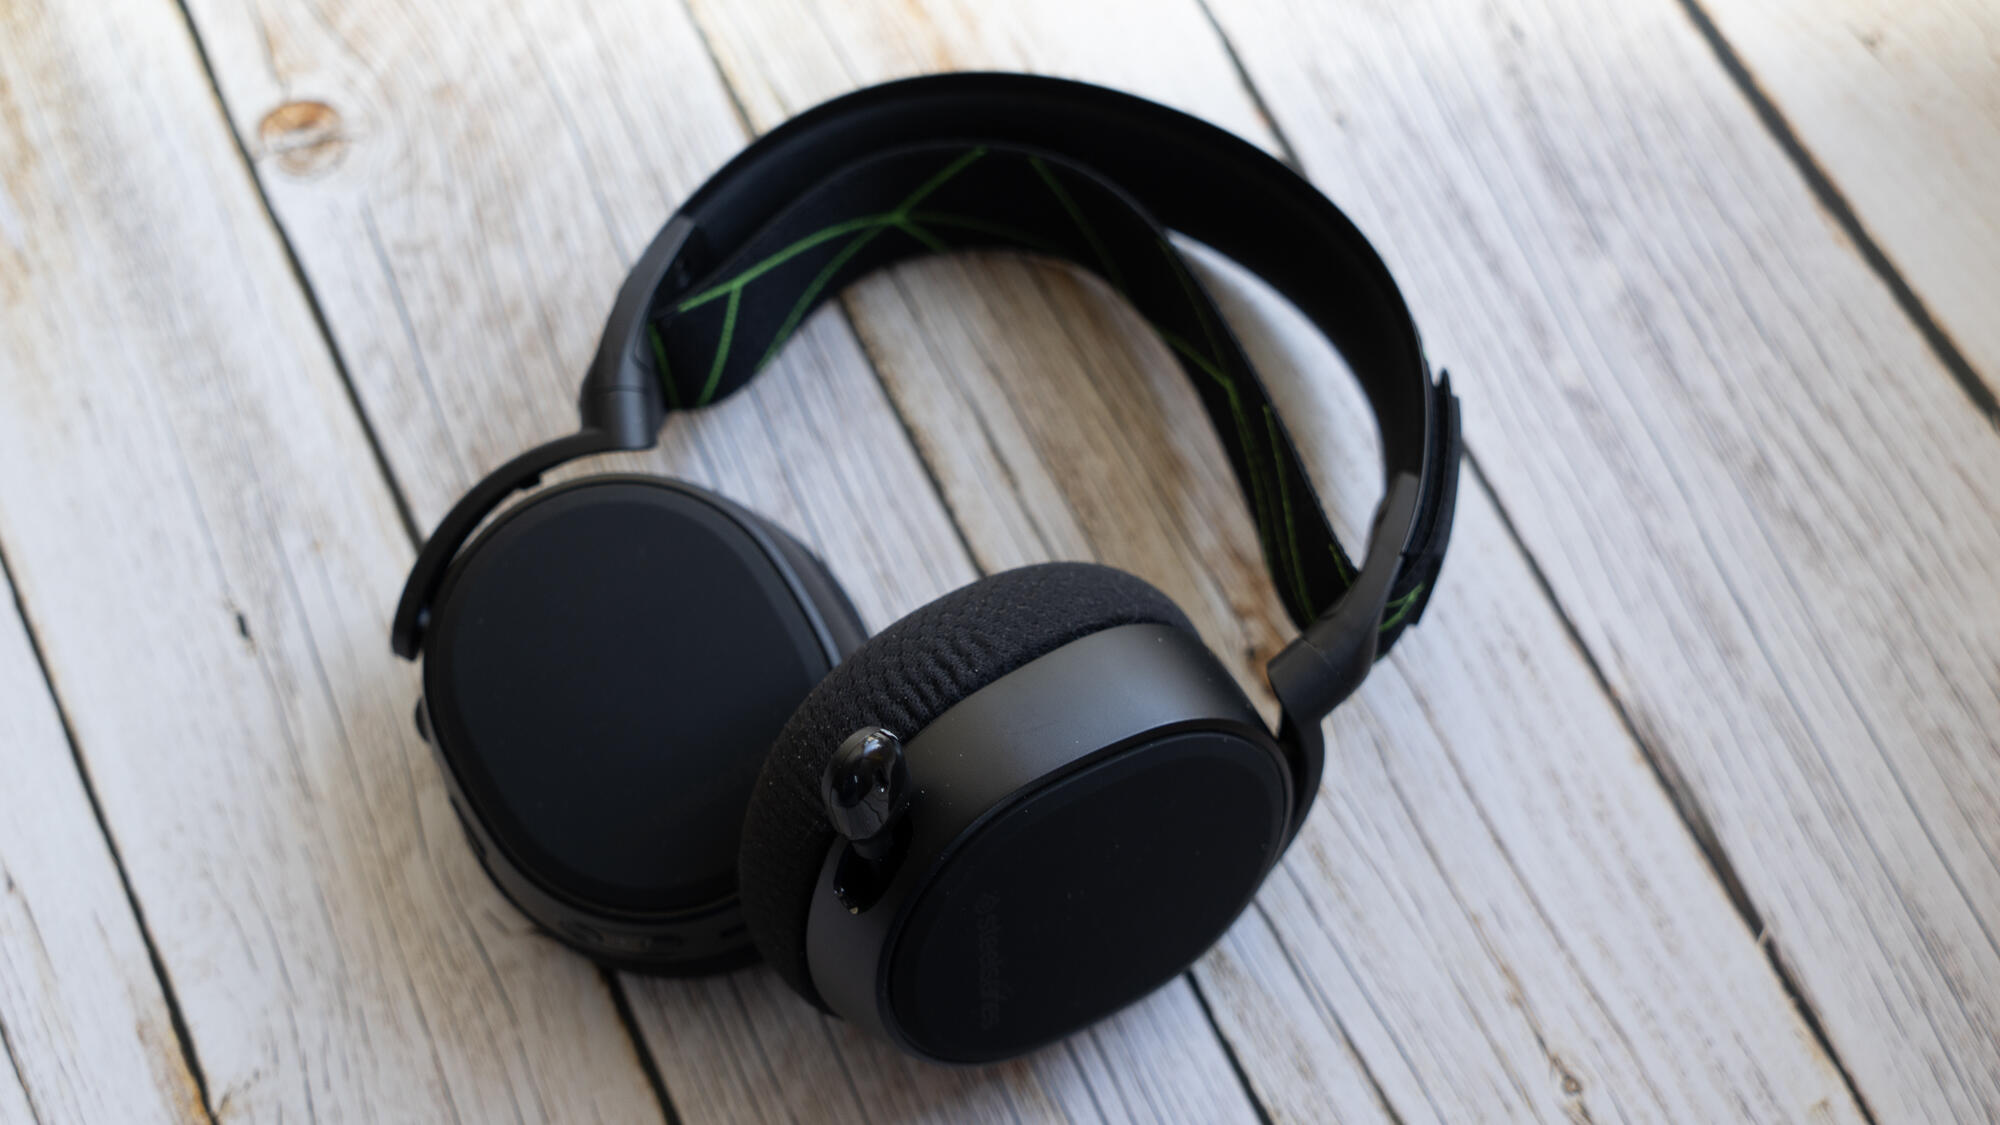 Best PC gaming headset for 2021